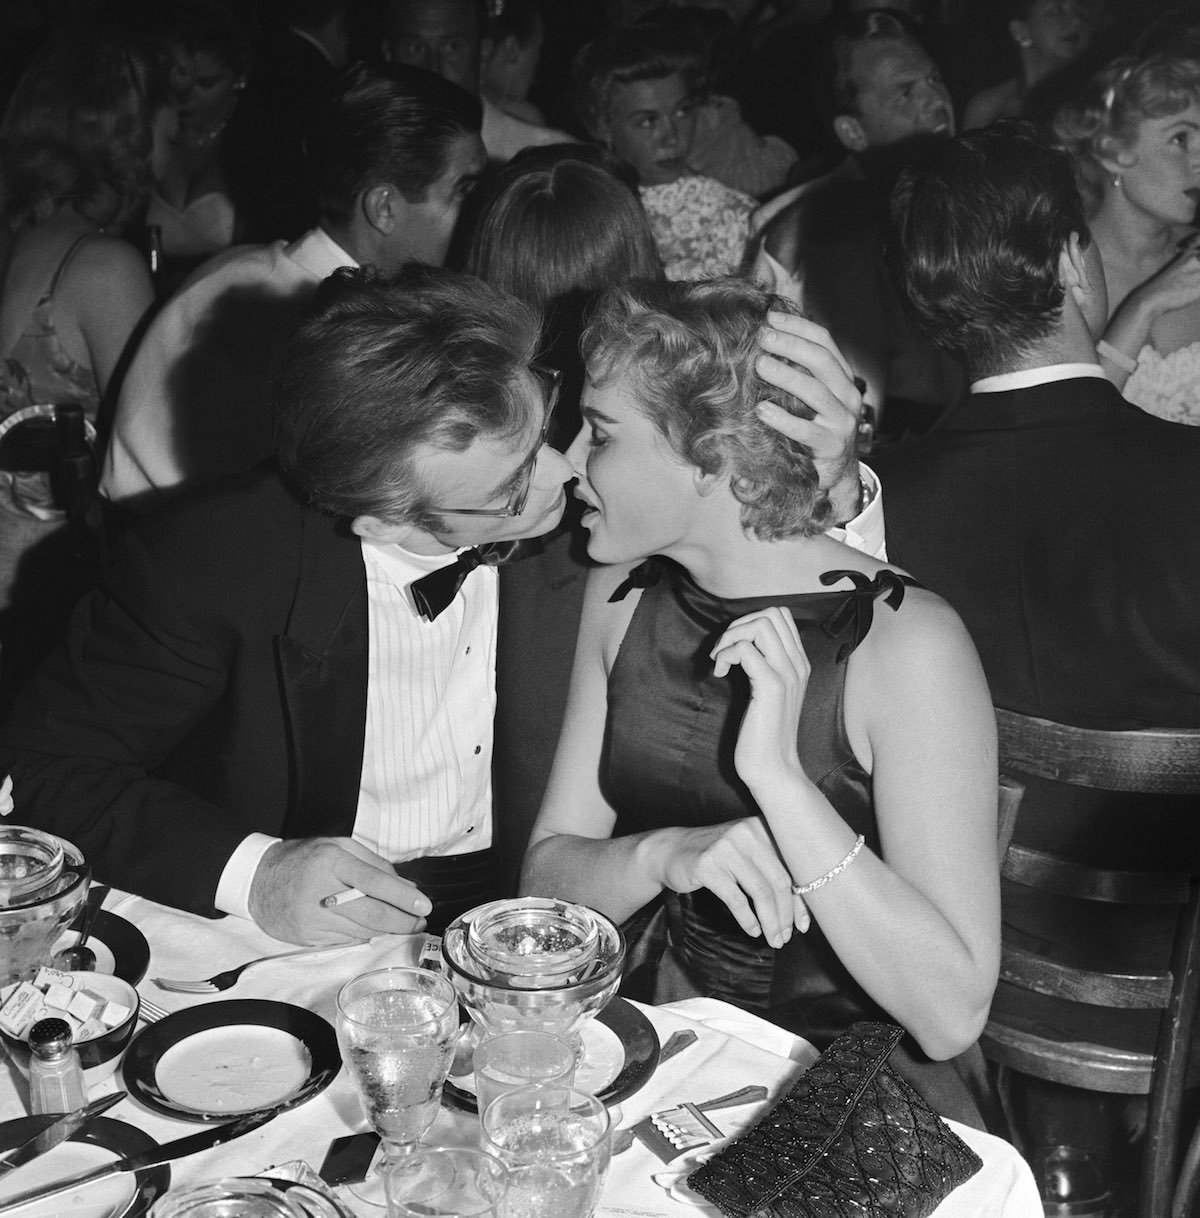 Lucille Ball And Desi Arnaz Children The Kiss 1955 James Dean And Ursula Andress Go Out On A Date